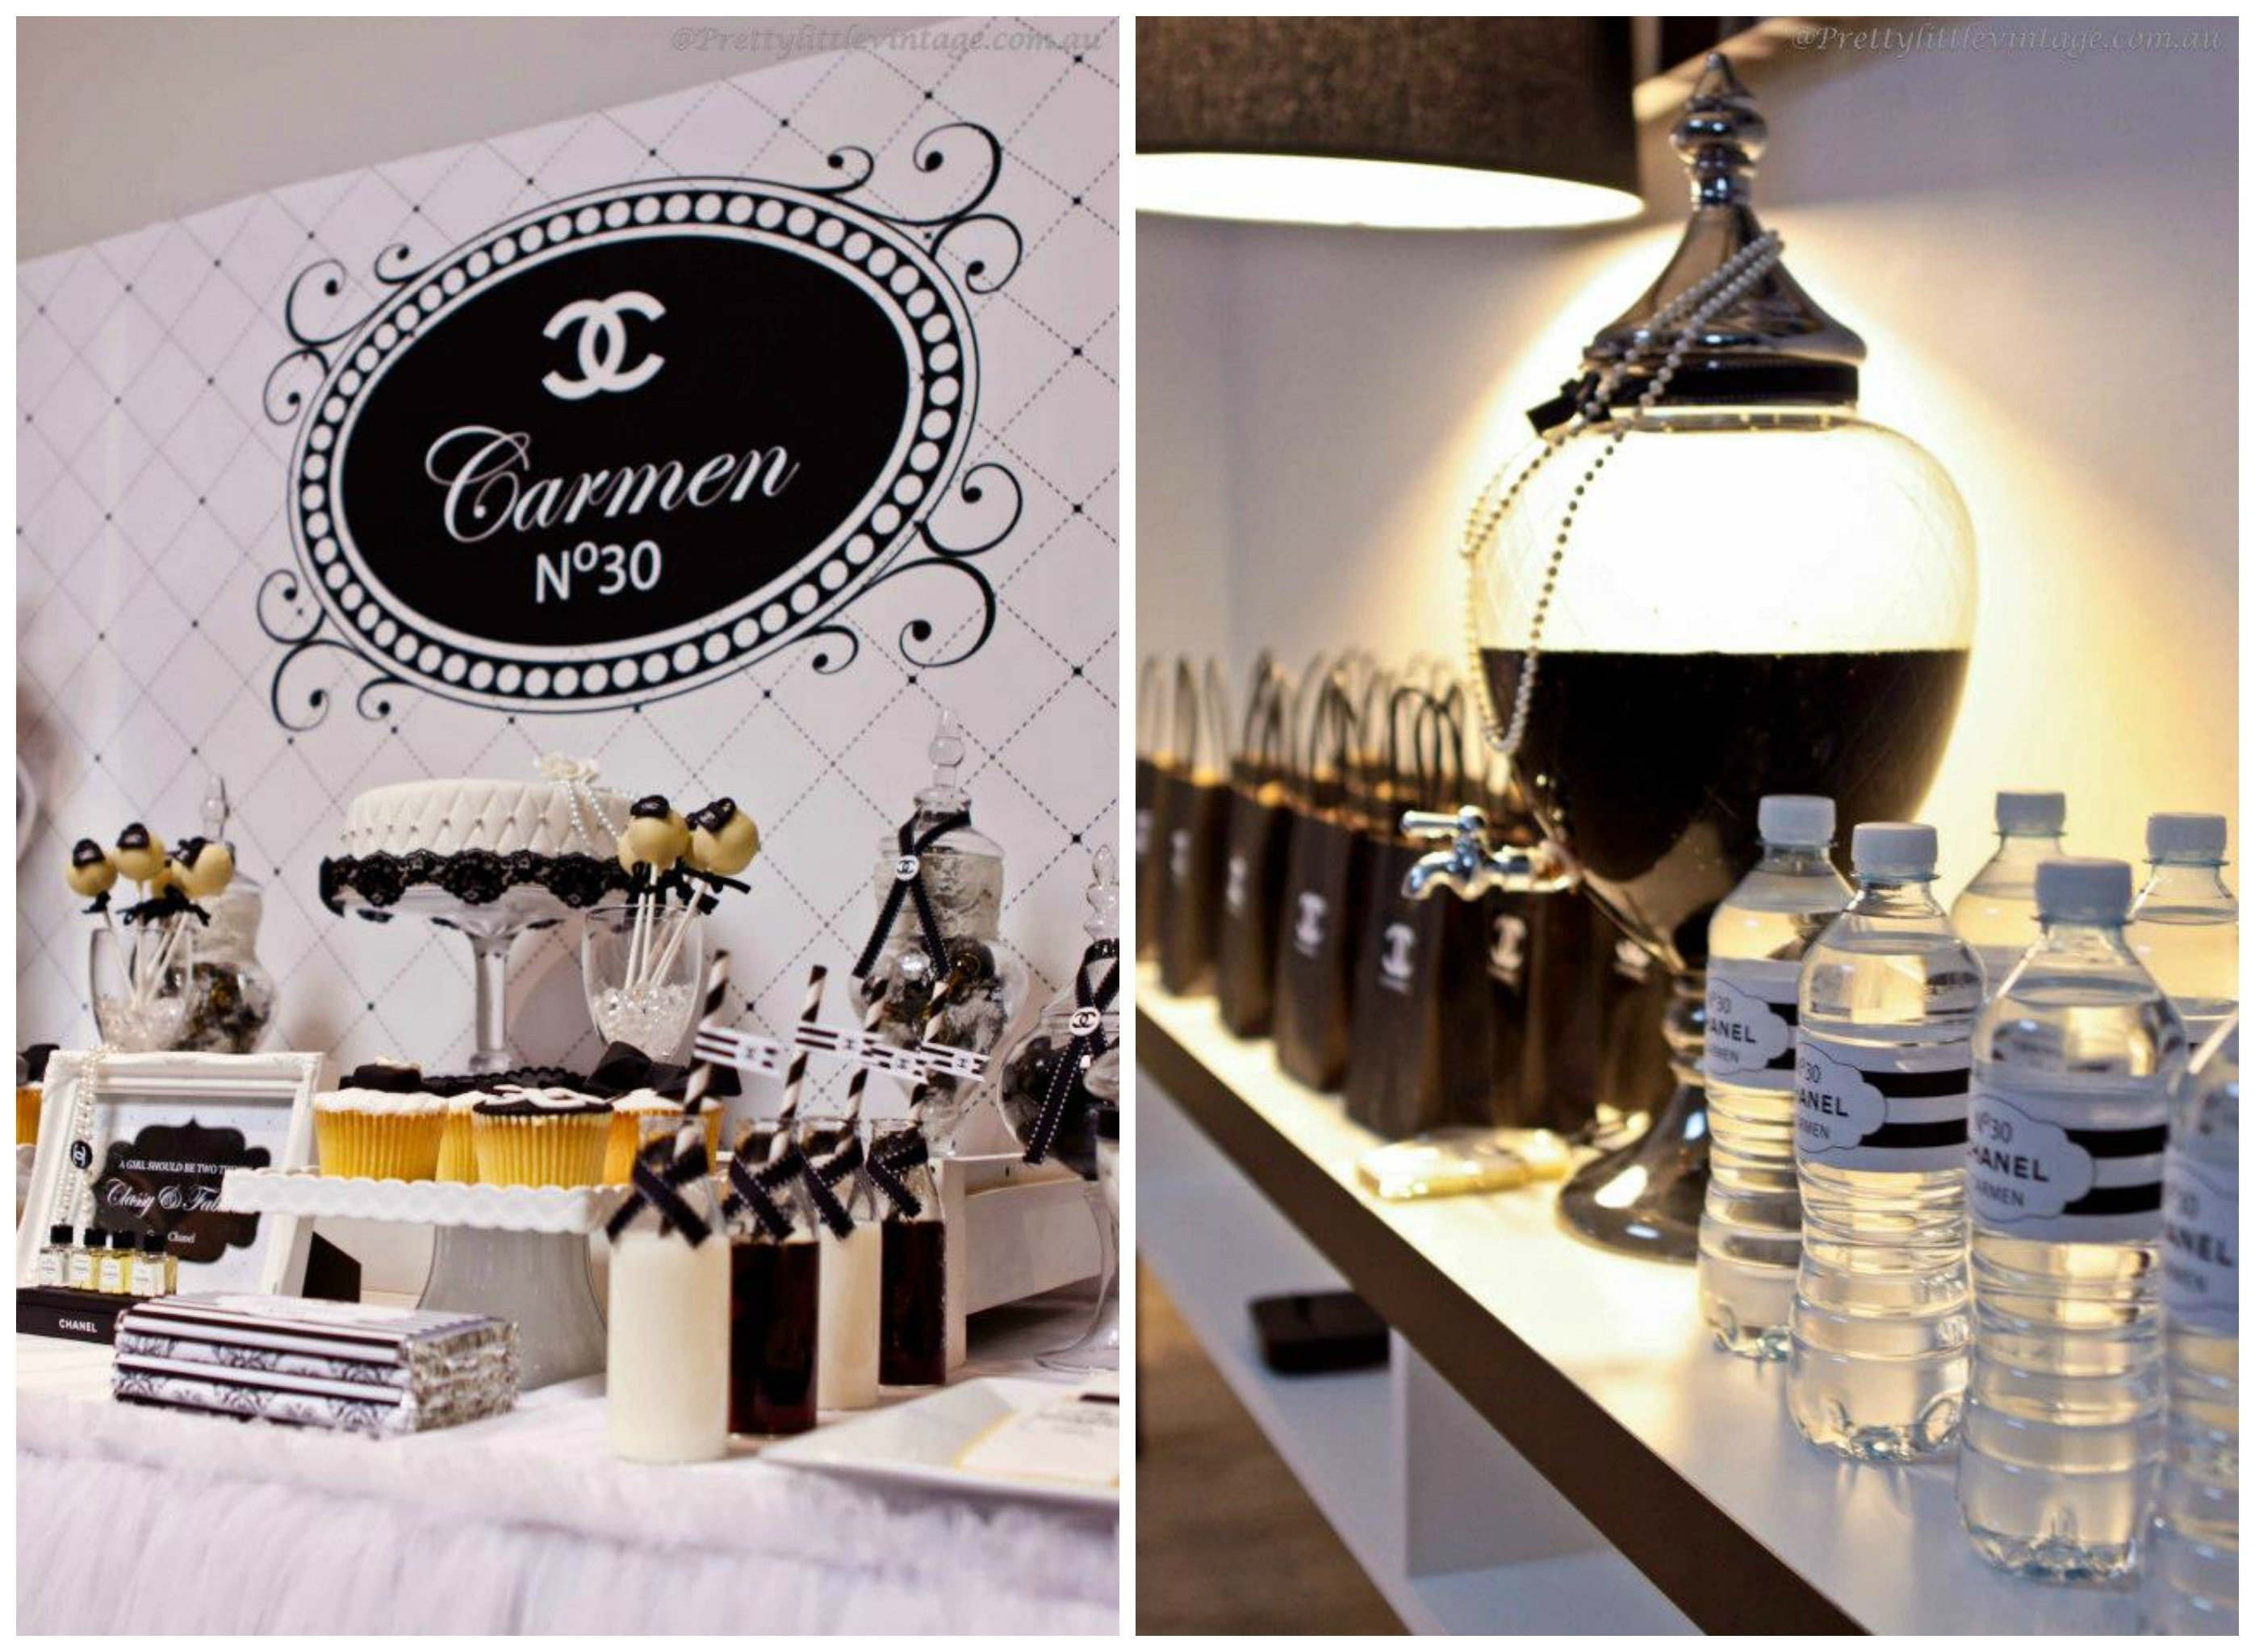 10 Attractive Ideas For A 30Th Birthday Party chanel inspired 30th birthday party 2 2020